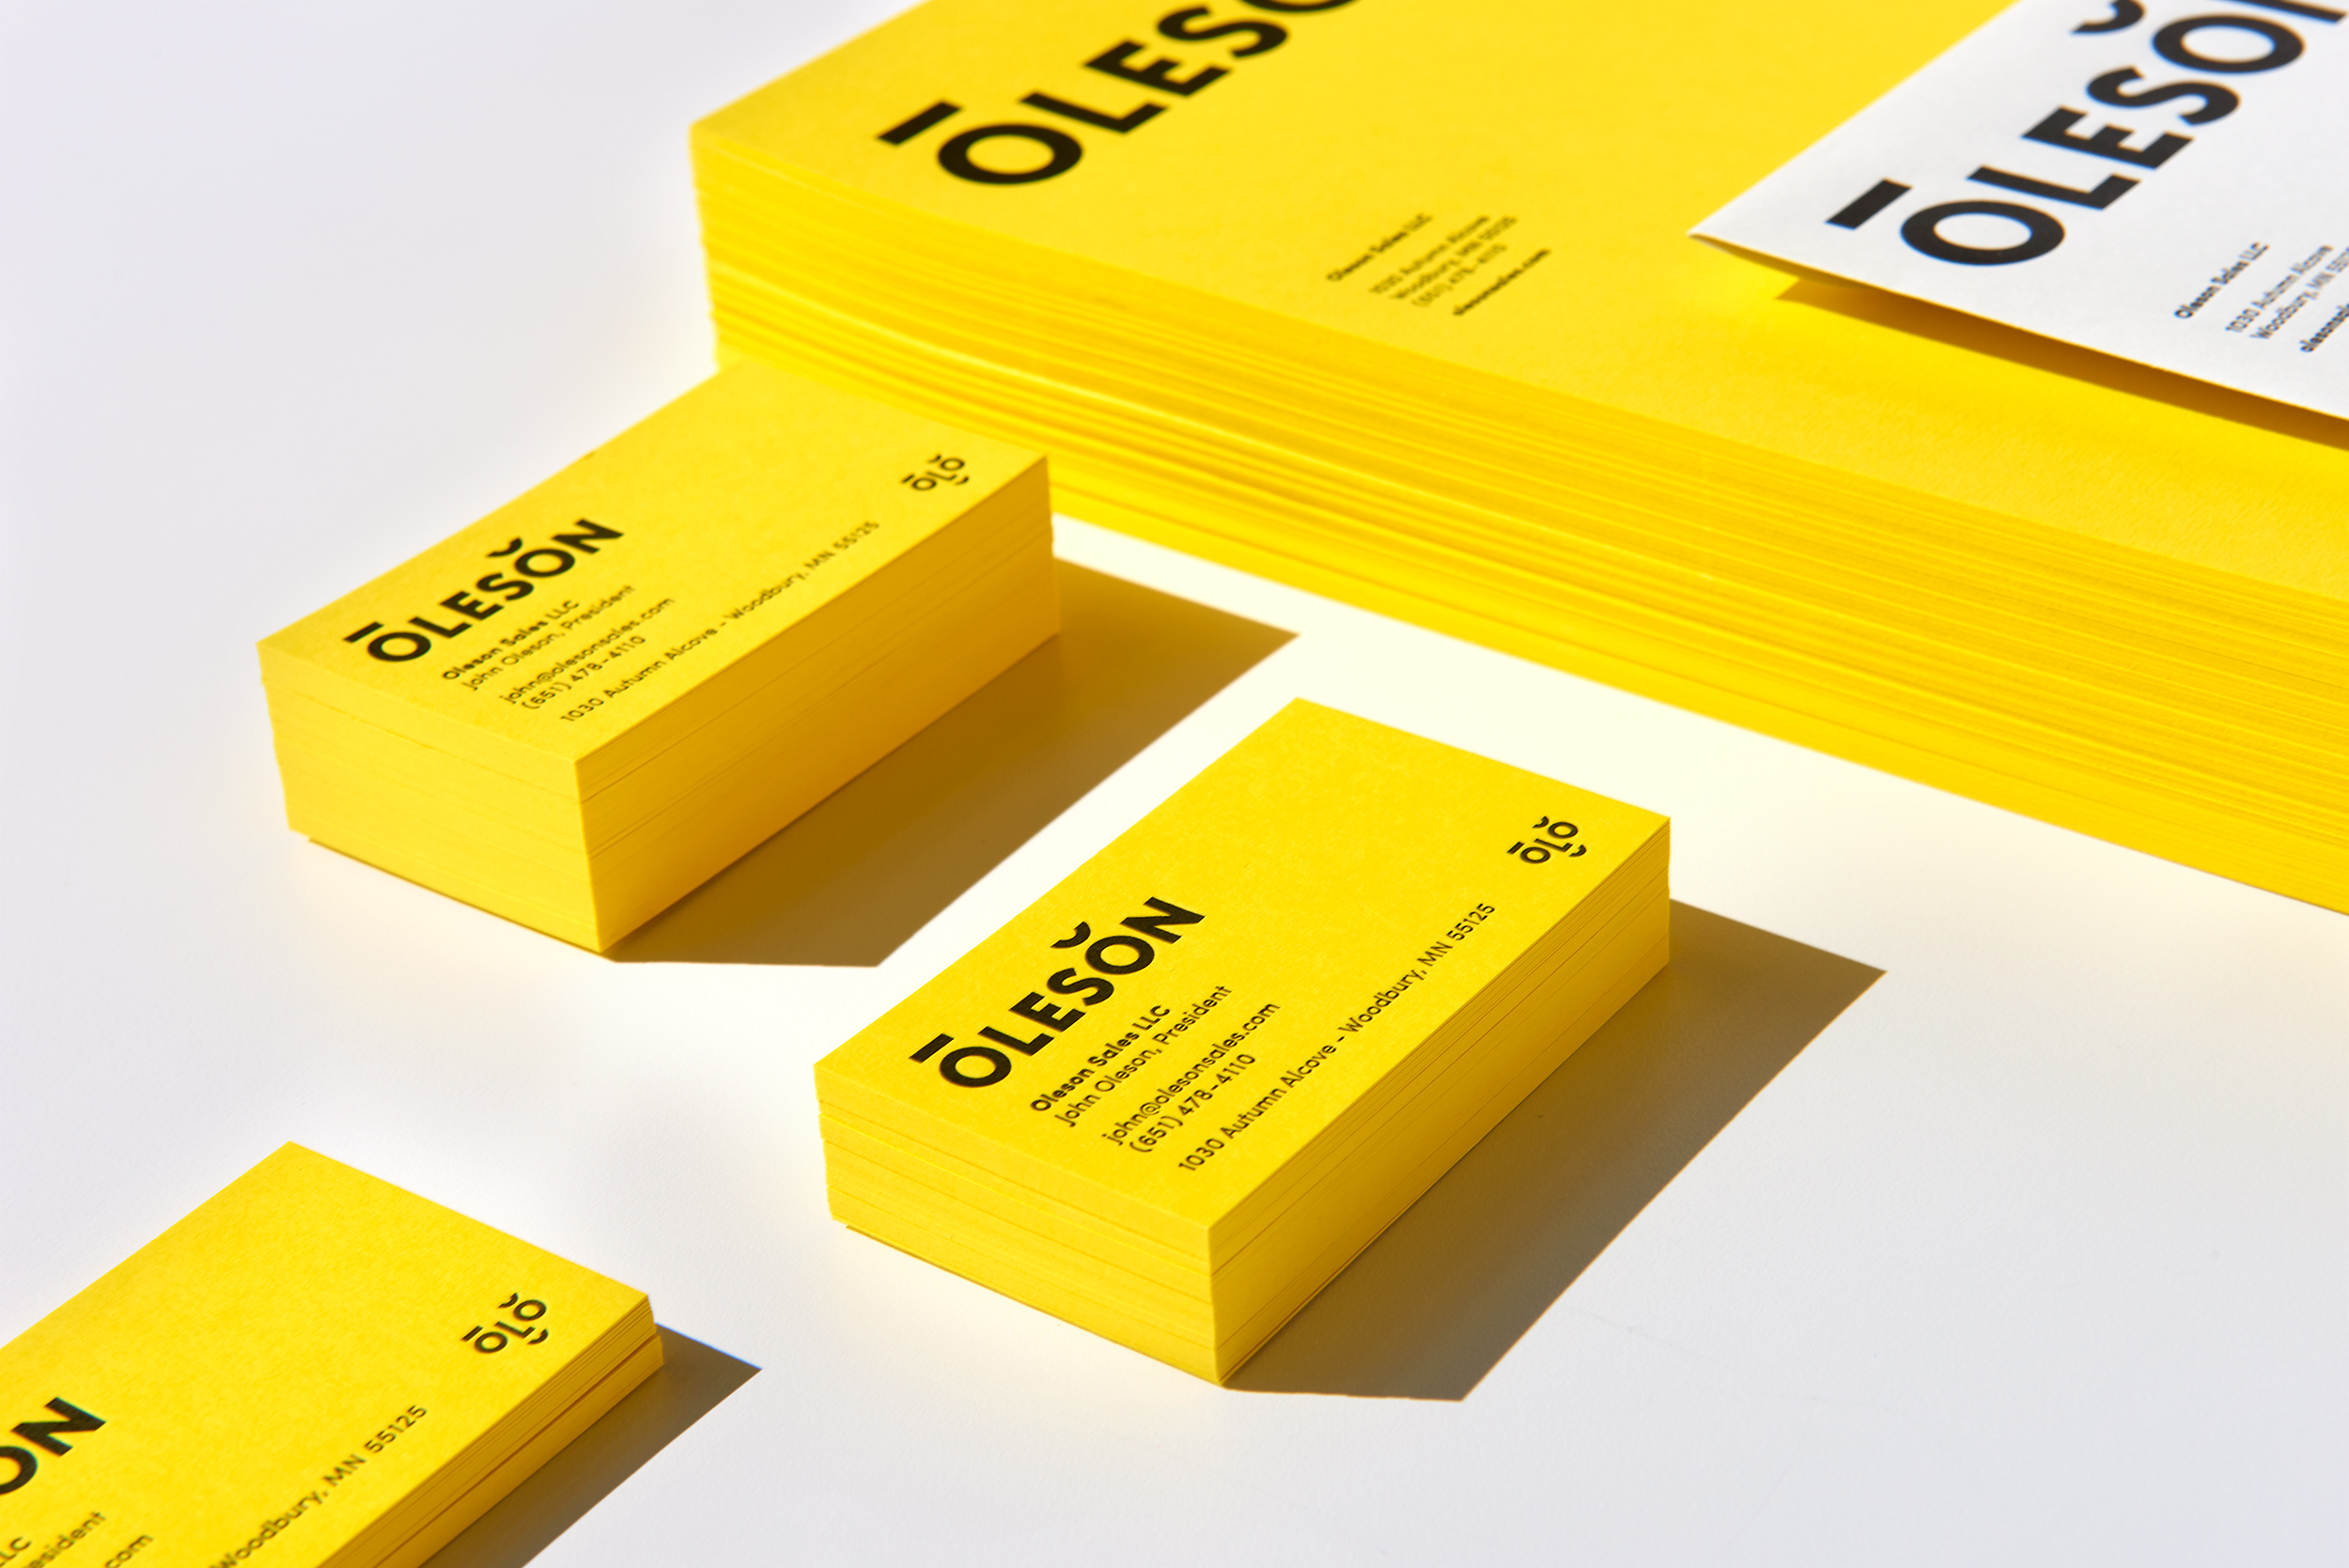 Oleson logo, business cards, and letterhead design. Designed by Abby Haddican at Werner Design Werks.